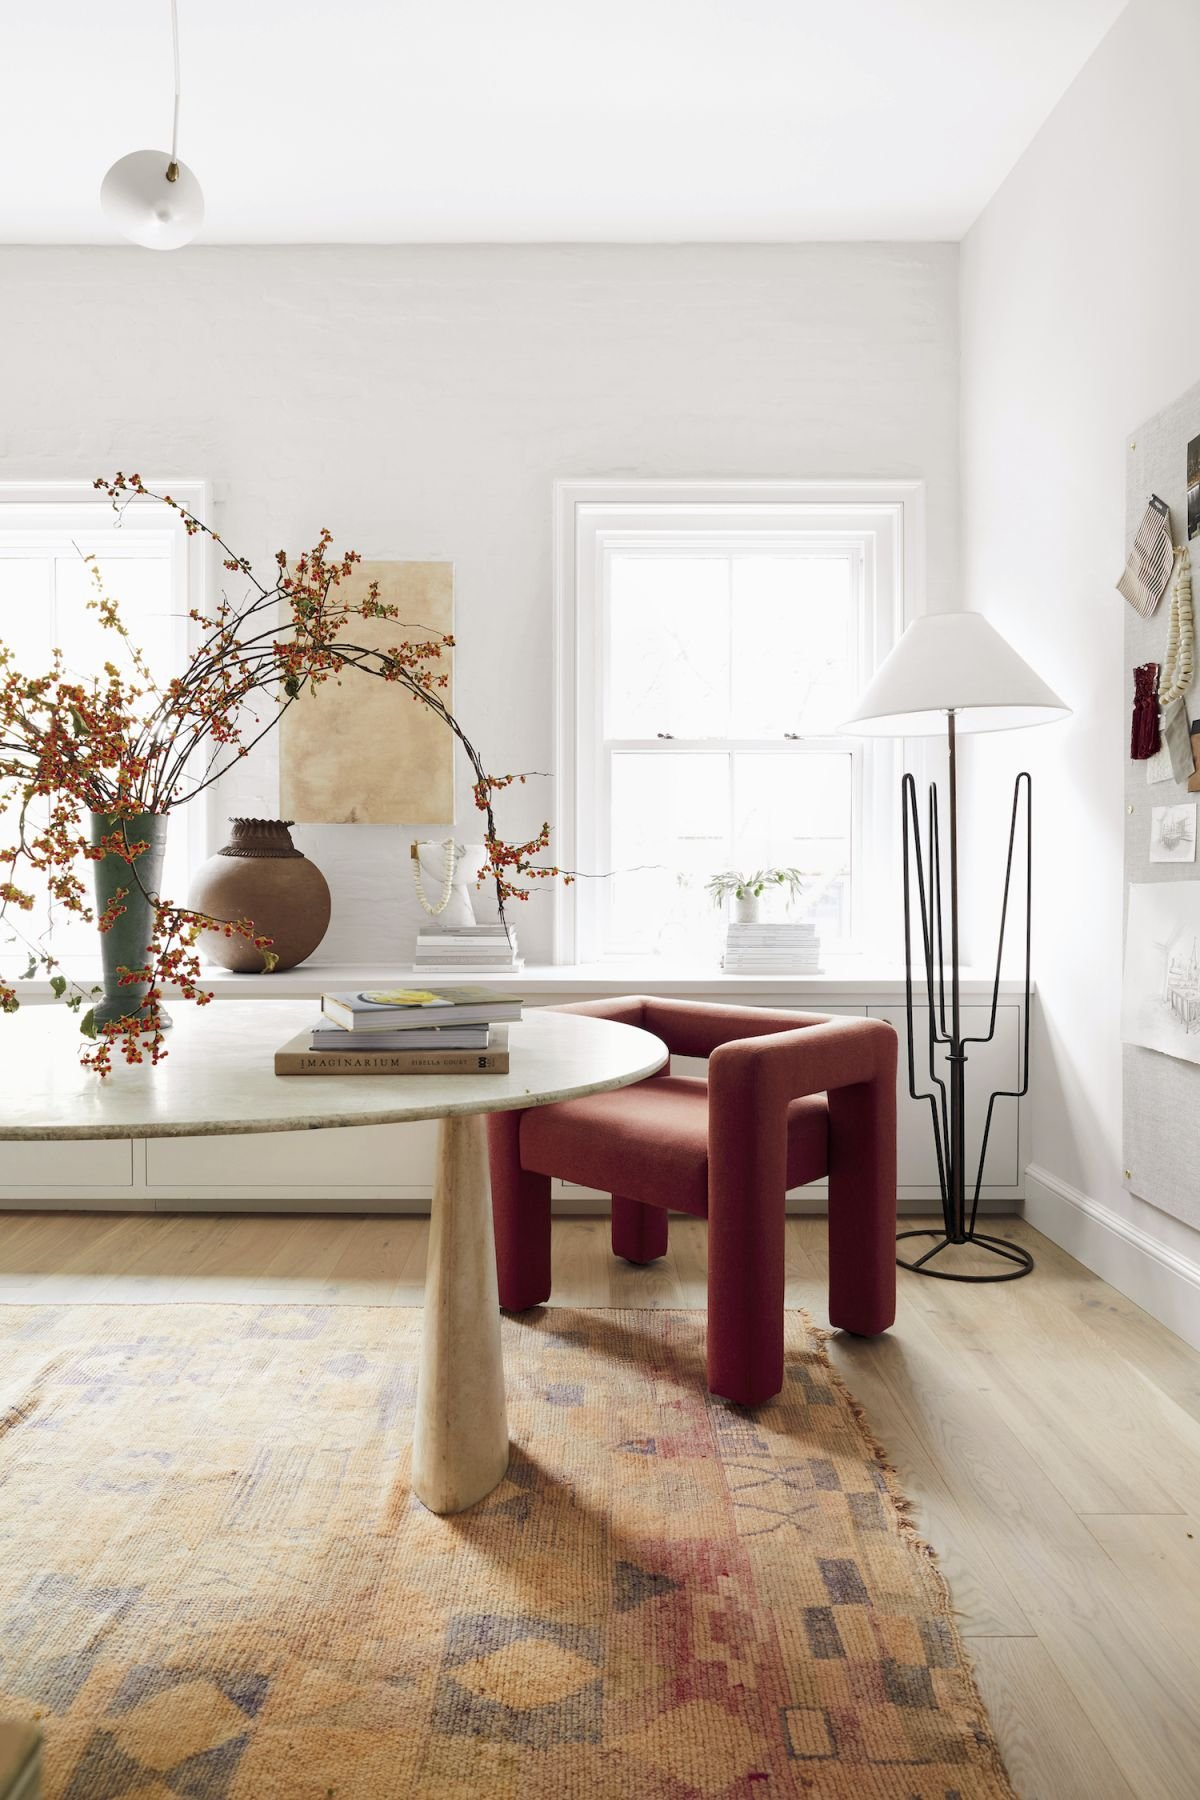 Athena Calderone reveals how to style your home on a budget